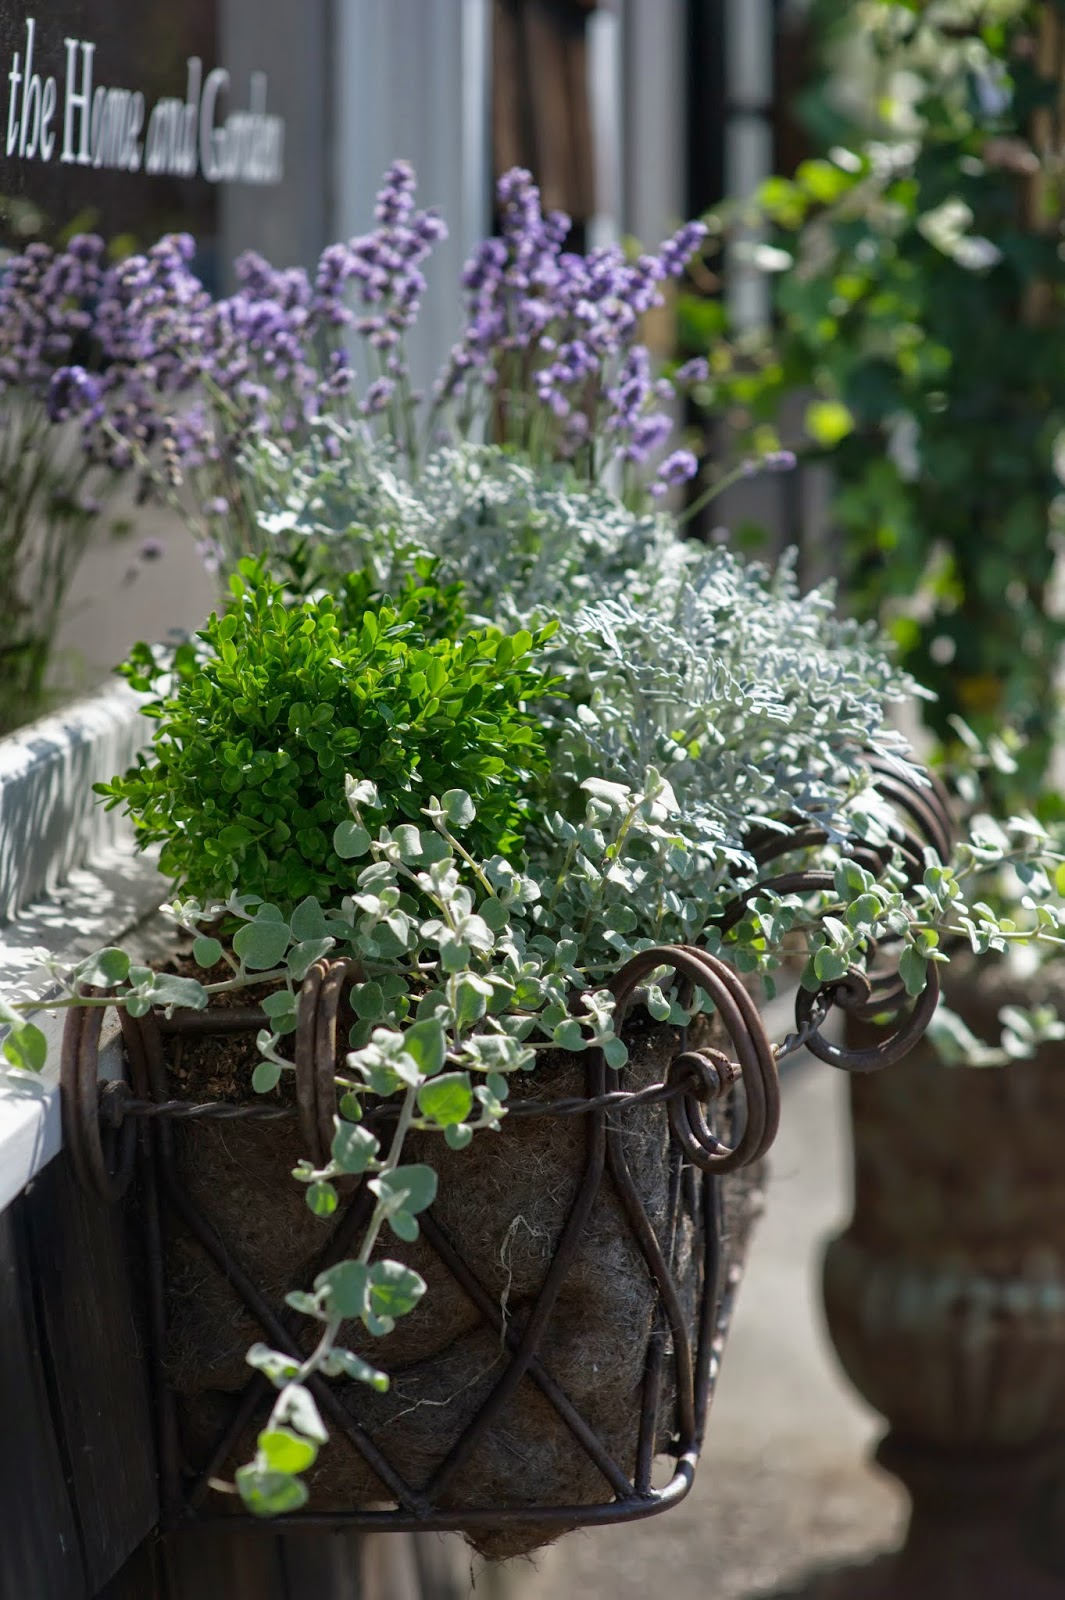 les fleurs : leah haydock photography : wire window box : european planter : french lavender, english boxwood, licorice & dusty miller